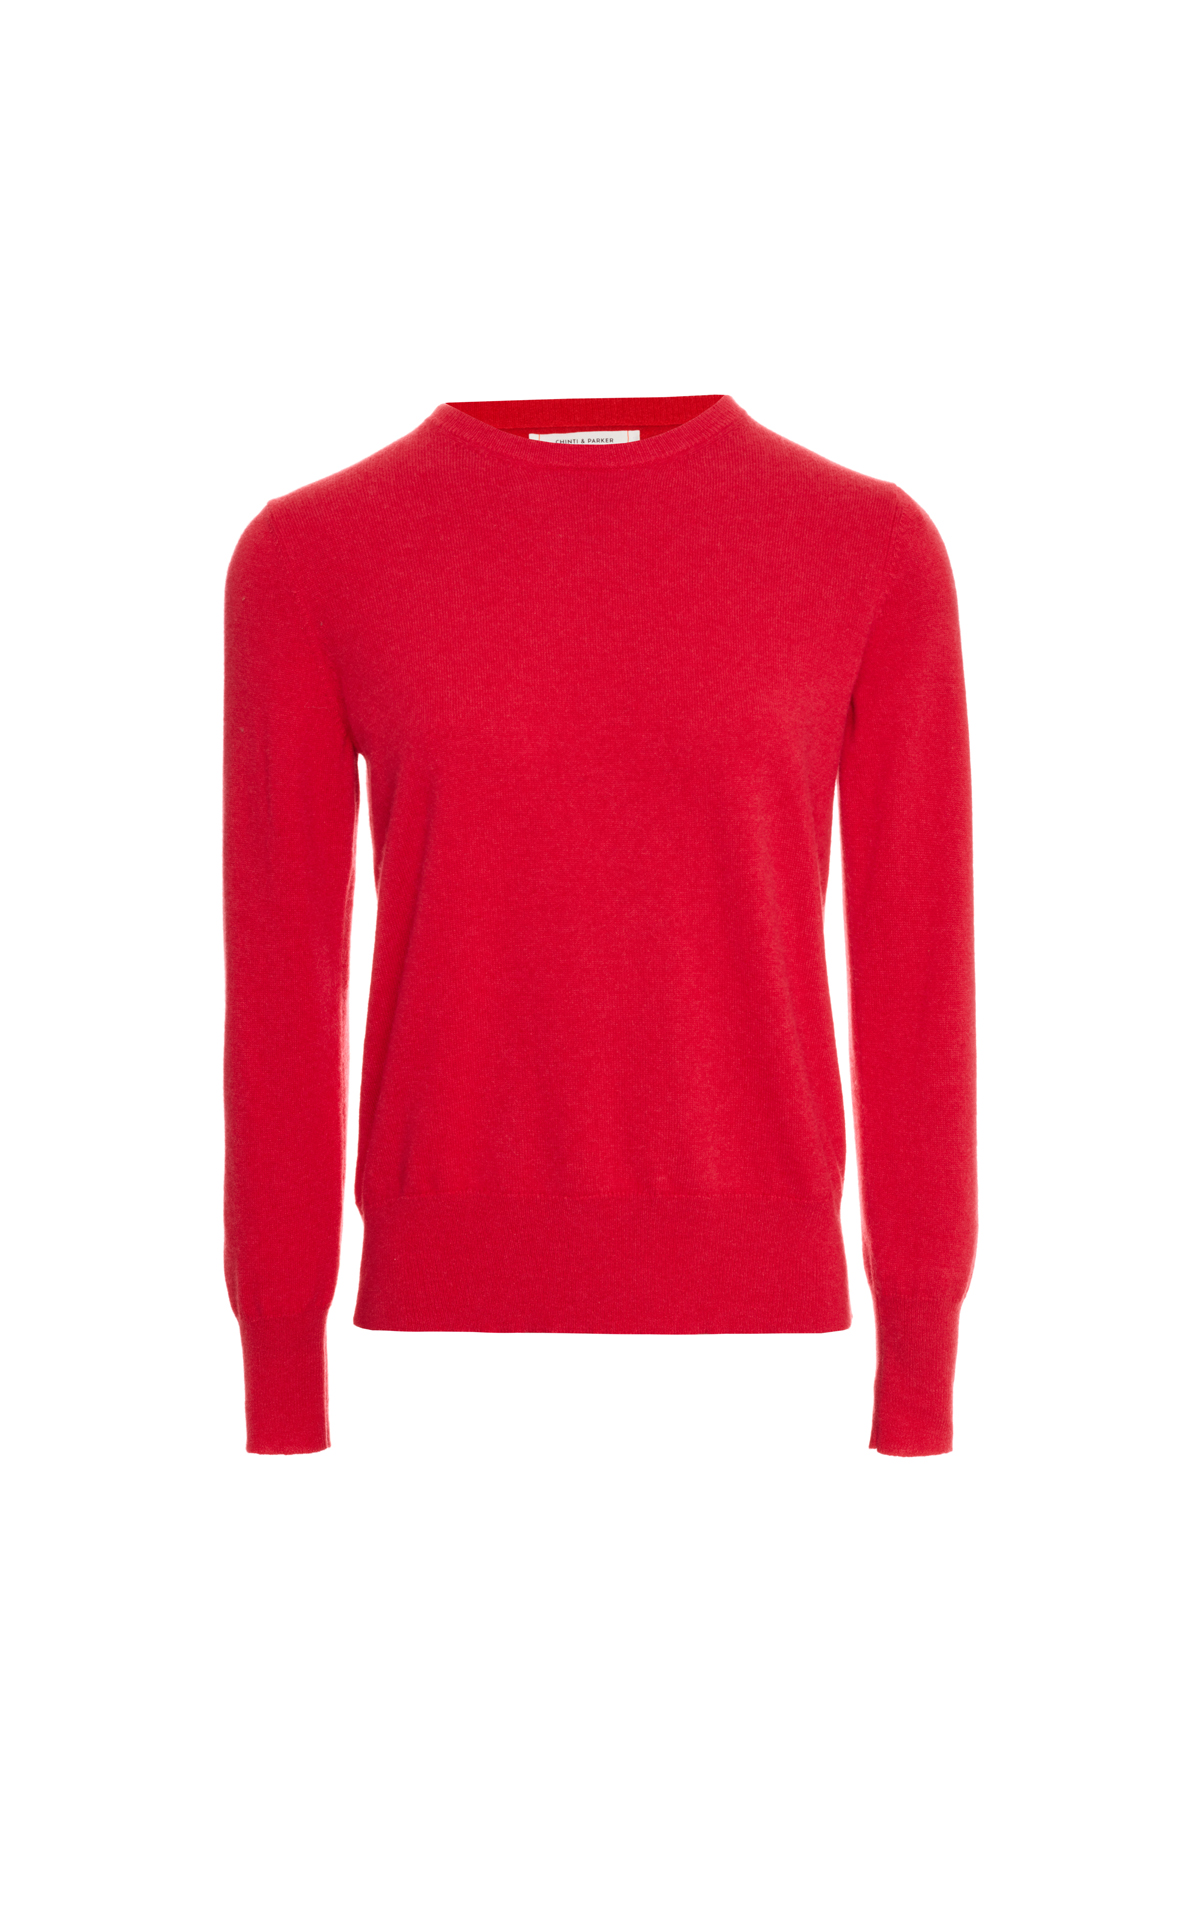 Chinti & Parker Fragola crew neck sweater from Bicester Village